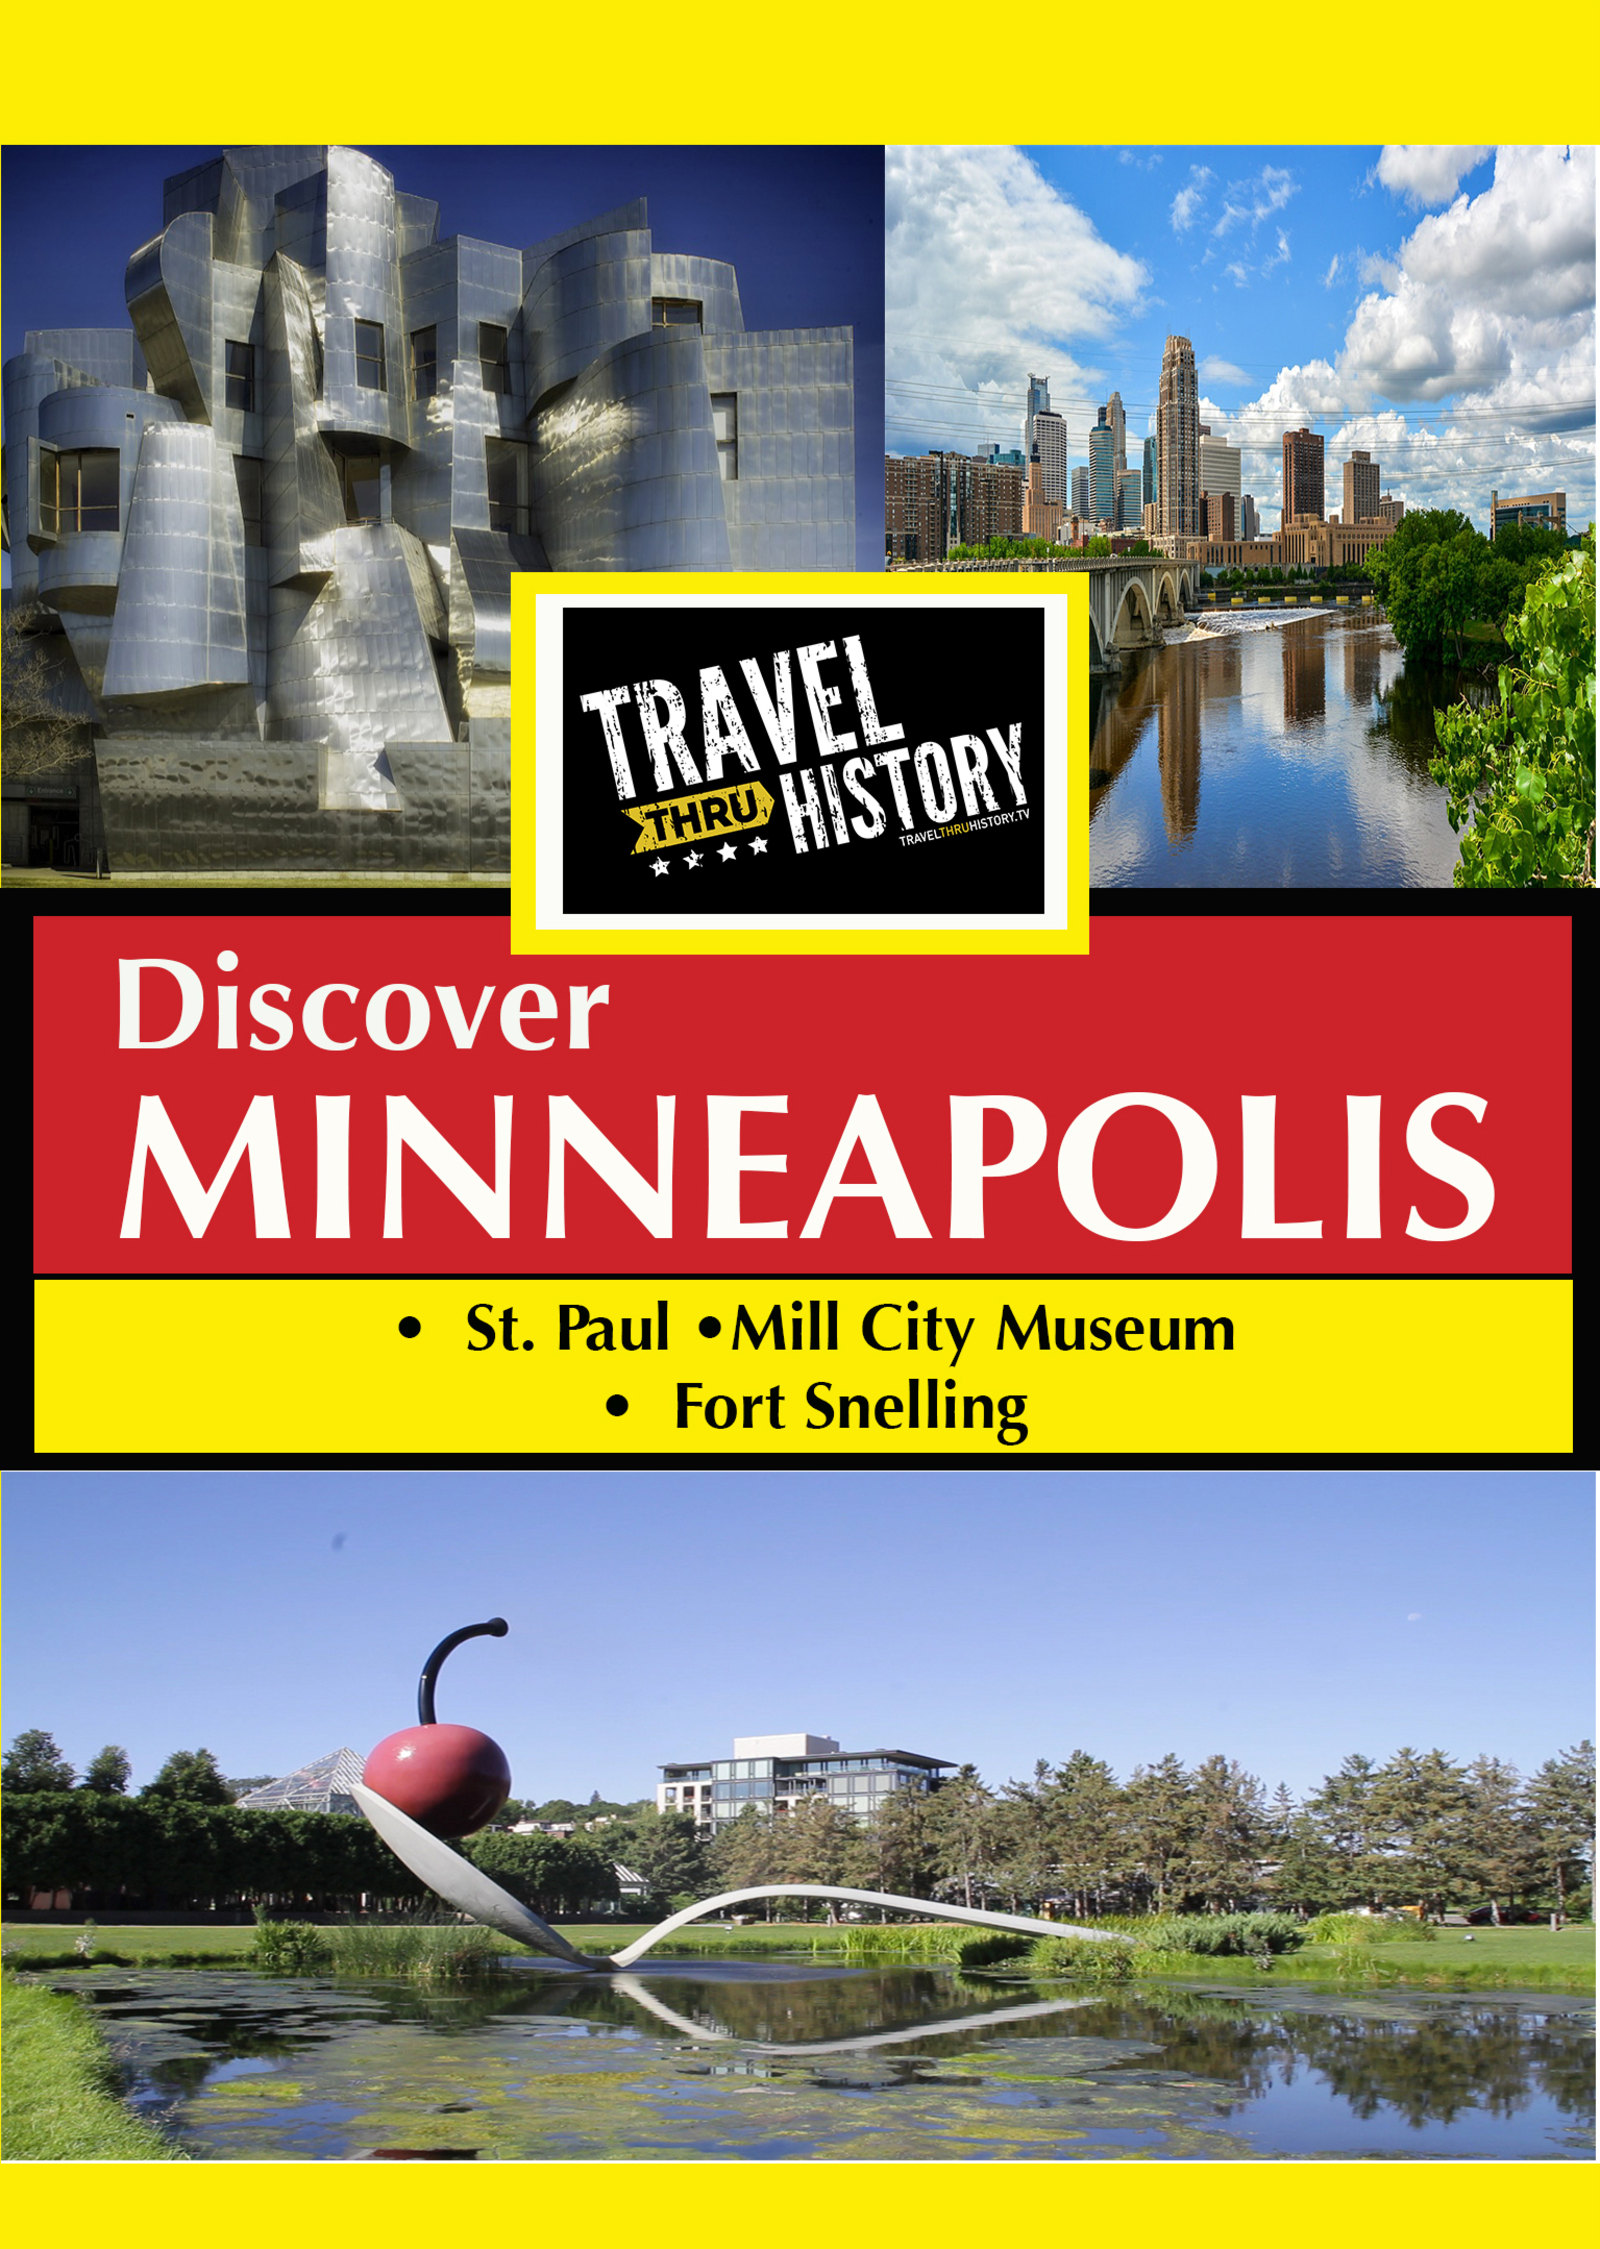 T8961 - Discover Minneapolis